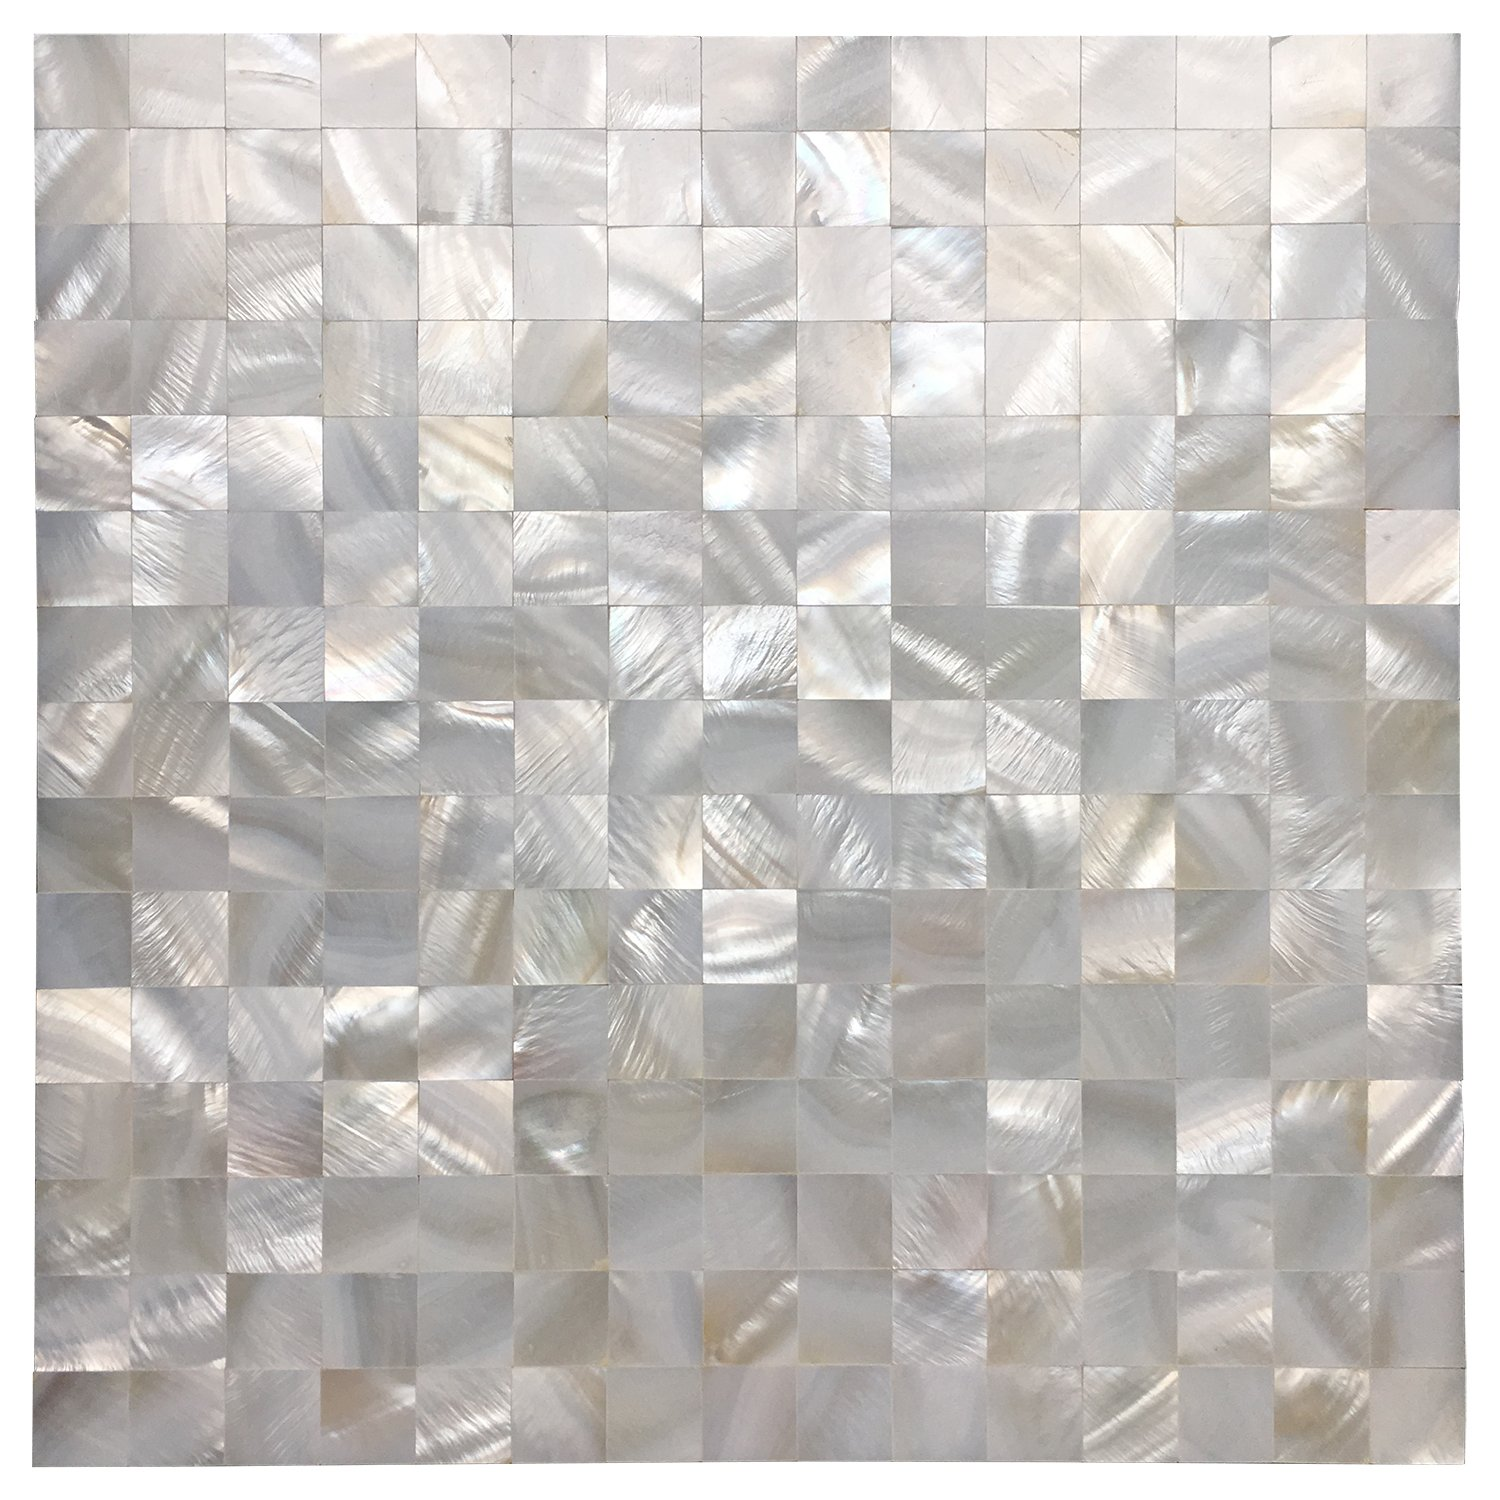 Art3d White Seamless Mother of Pearl Tile Shell Mosaic for Bathroom/Kitchen Backsplashes (10 Sheets) by Art3d